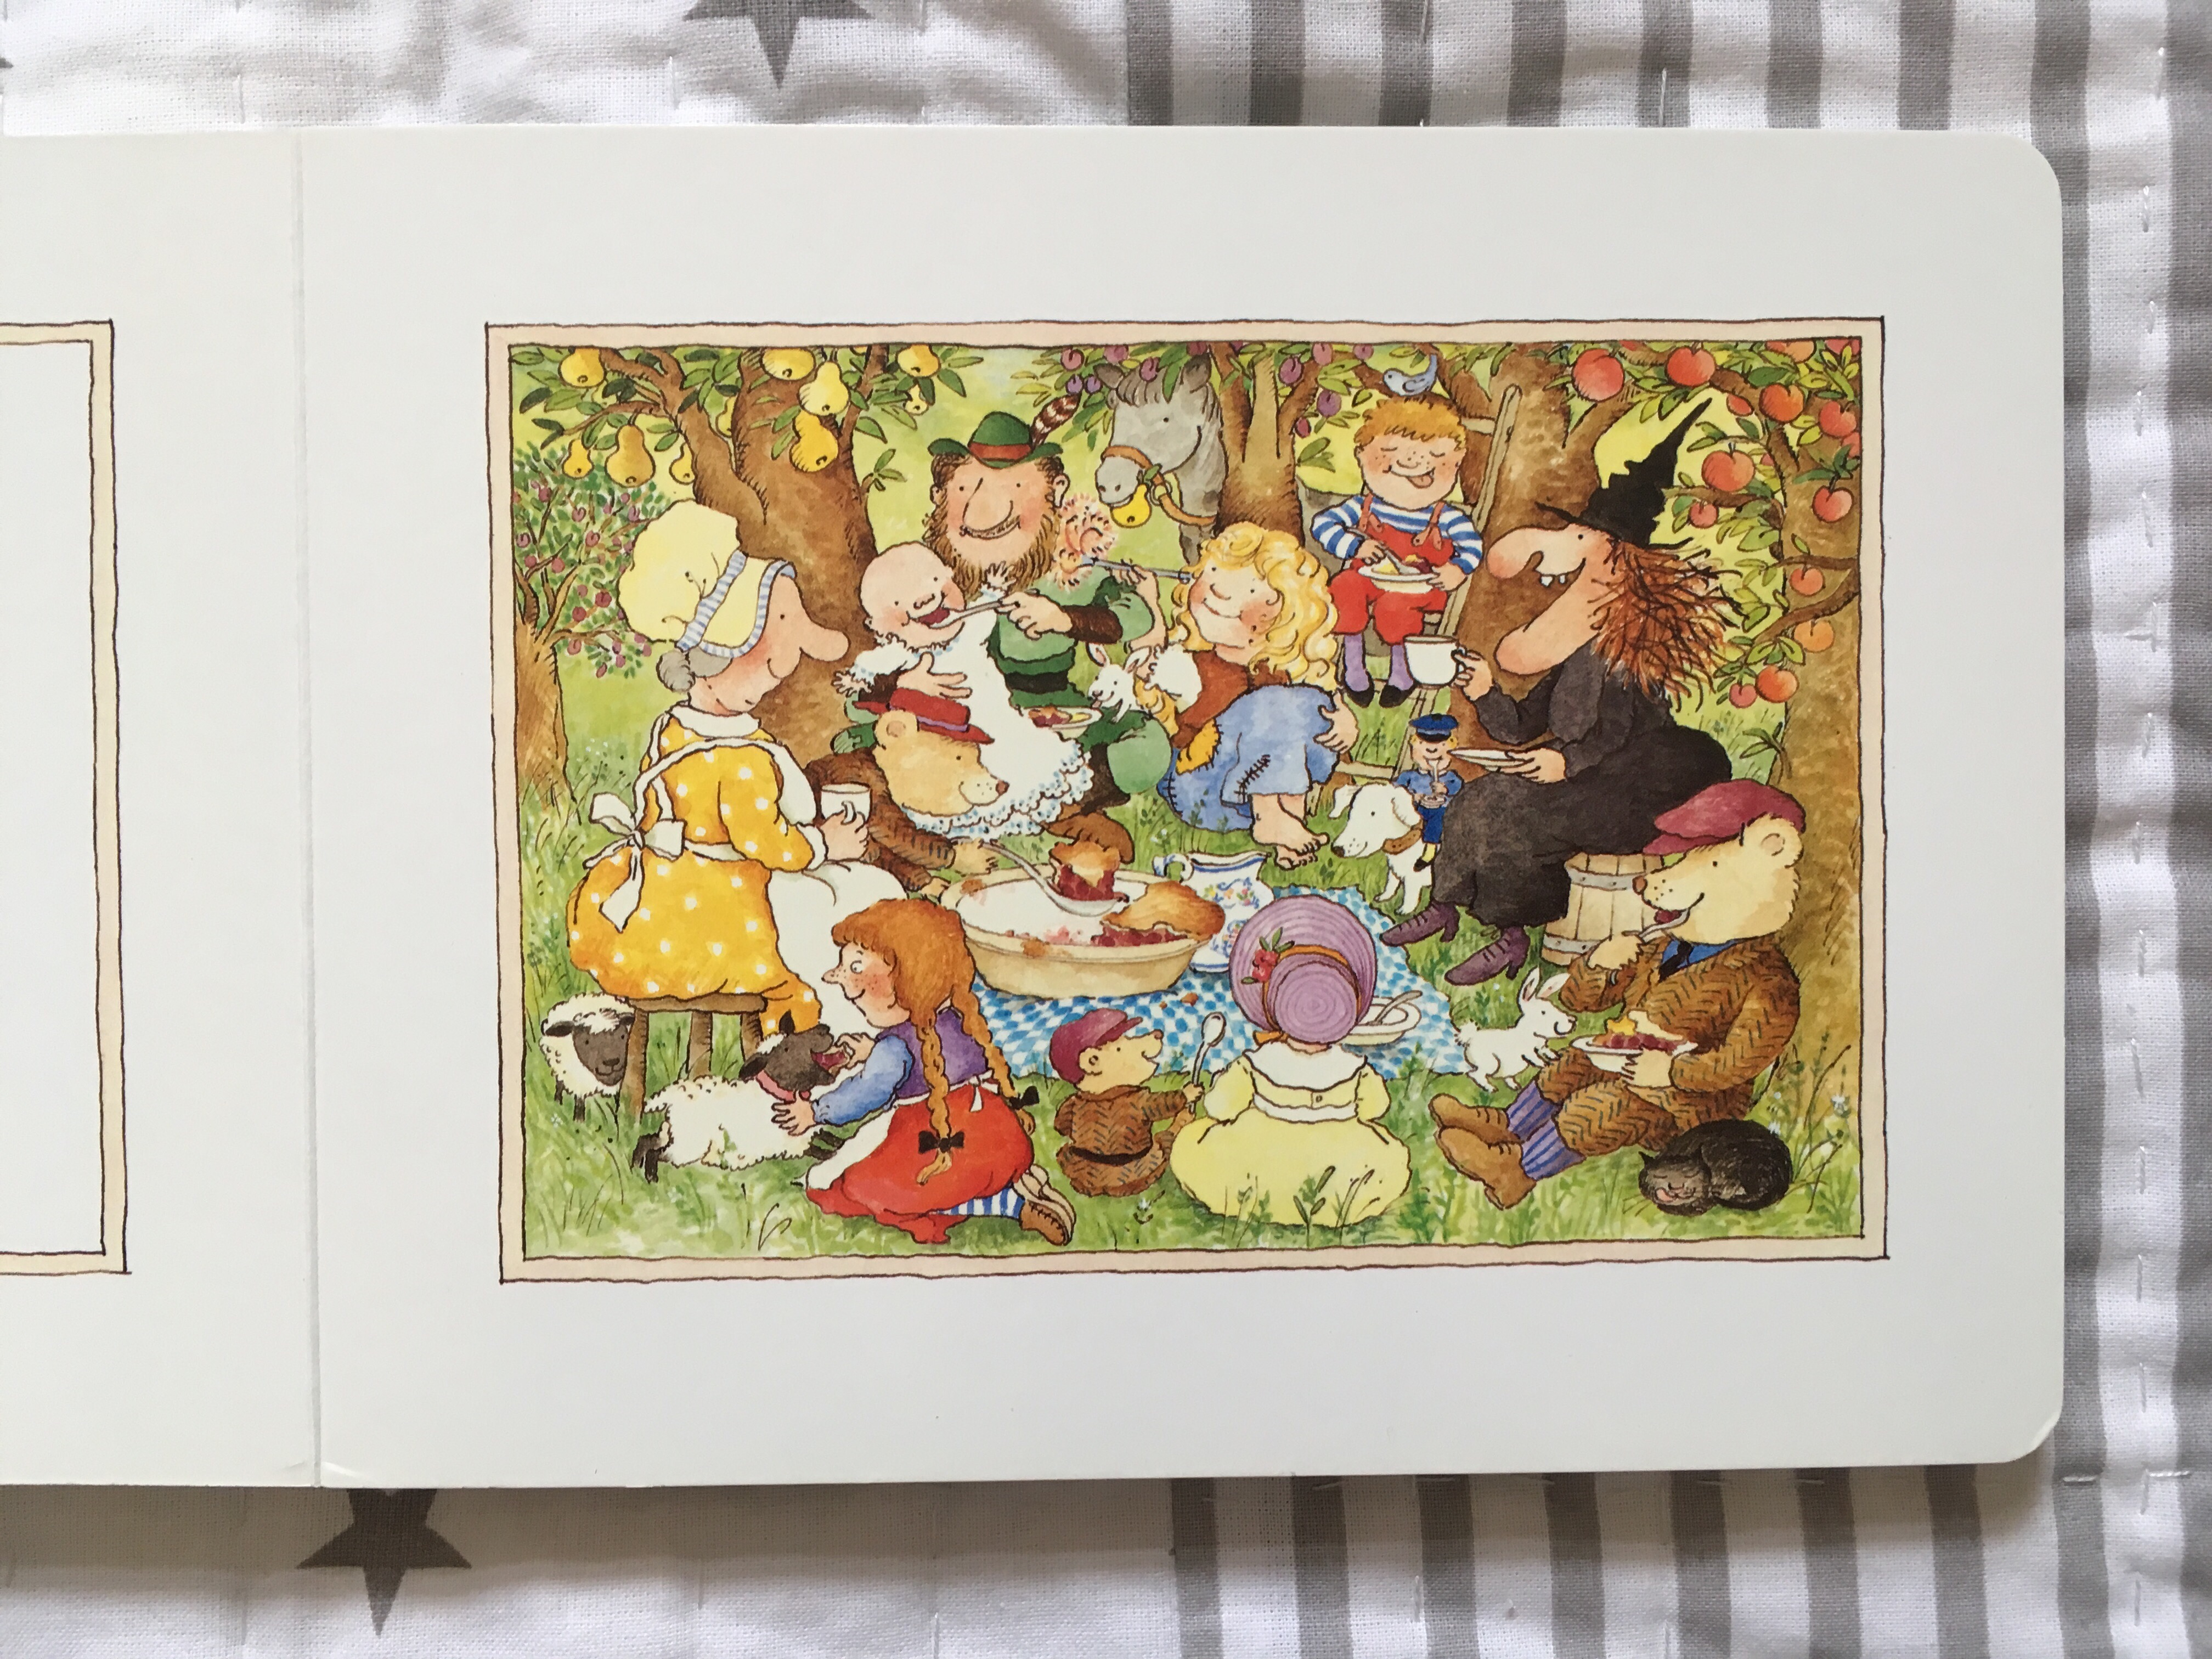 What We Re Reading Each Peach Pear Plum By Janet And Allan Ahlberg Books With Baby